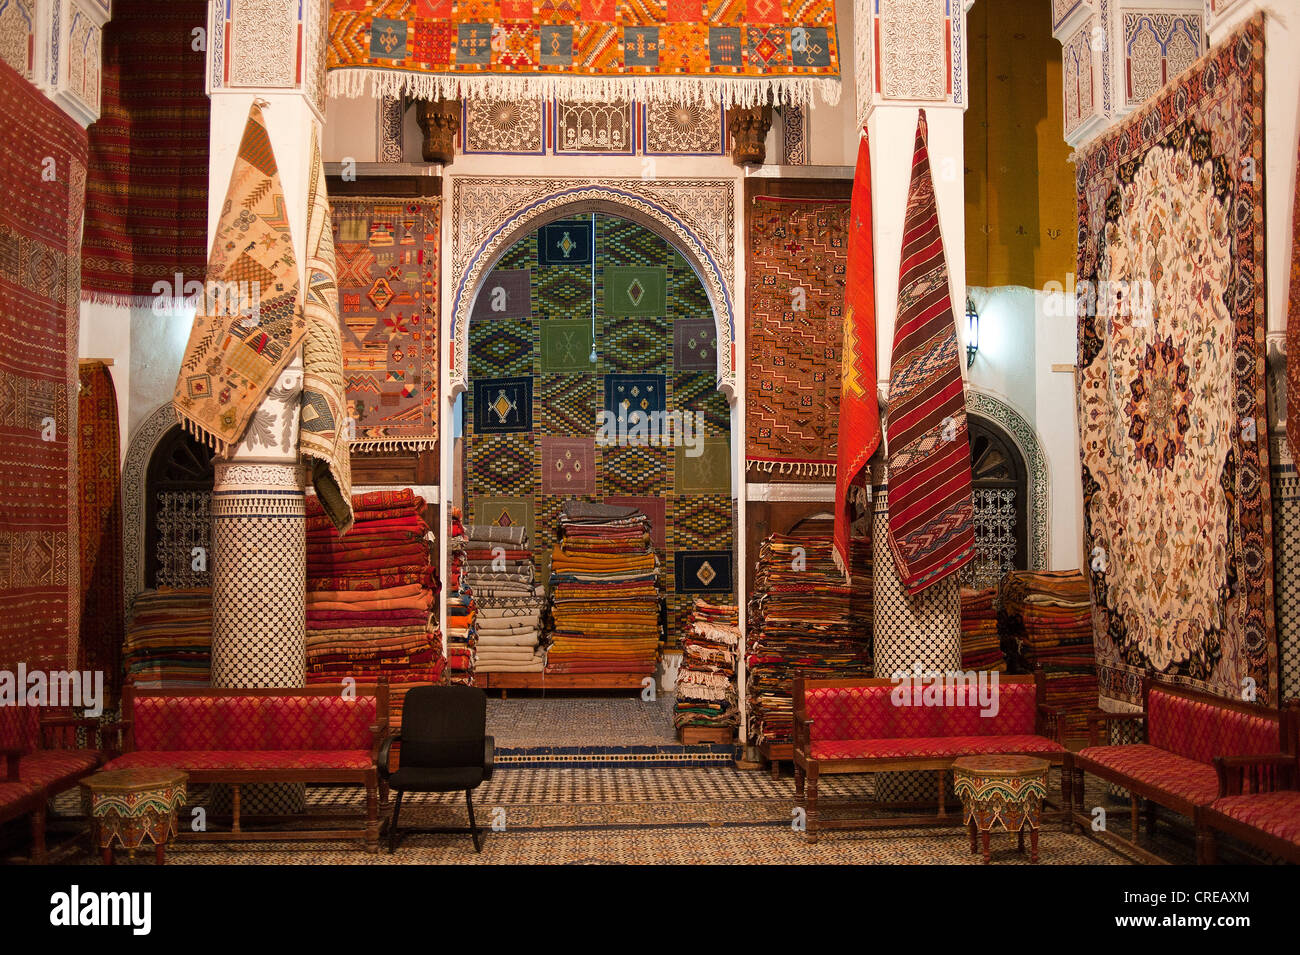 Shop Of A Carpet Dealer In An Old Riad City Palace In The